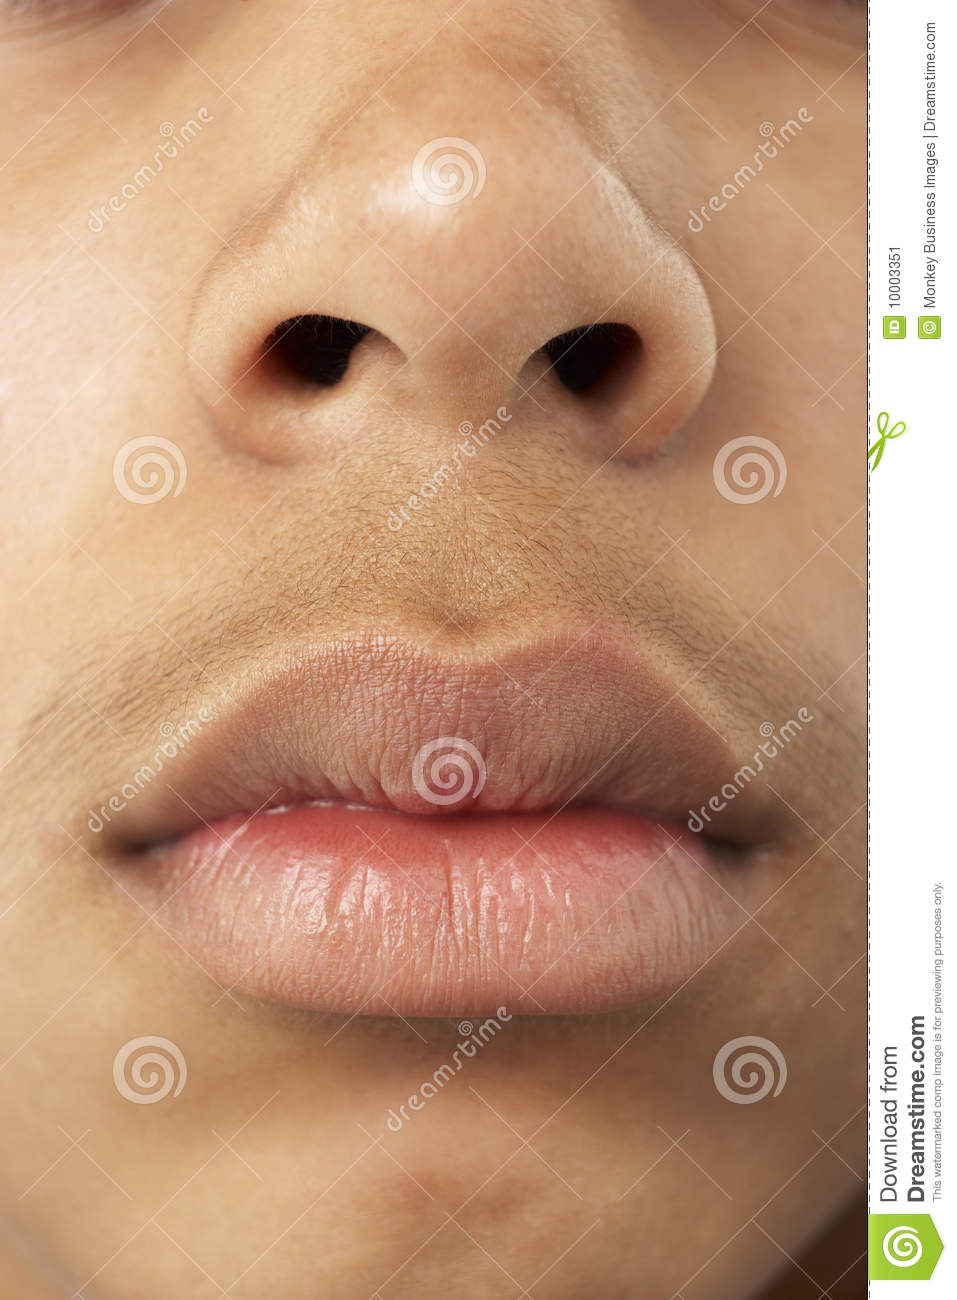 Close-Up Of Young Boy s Mouth And Nose